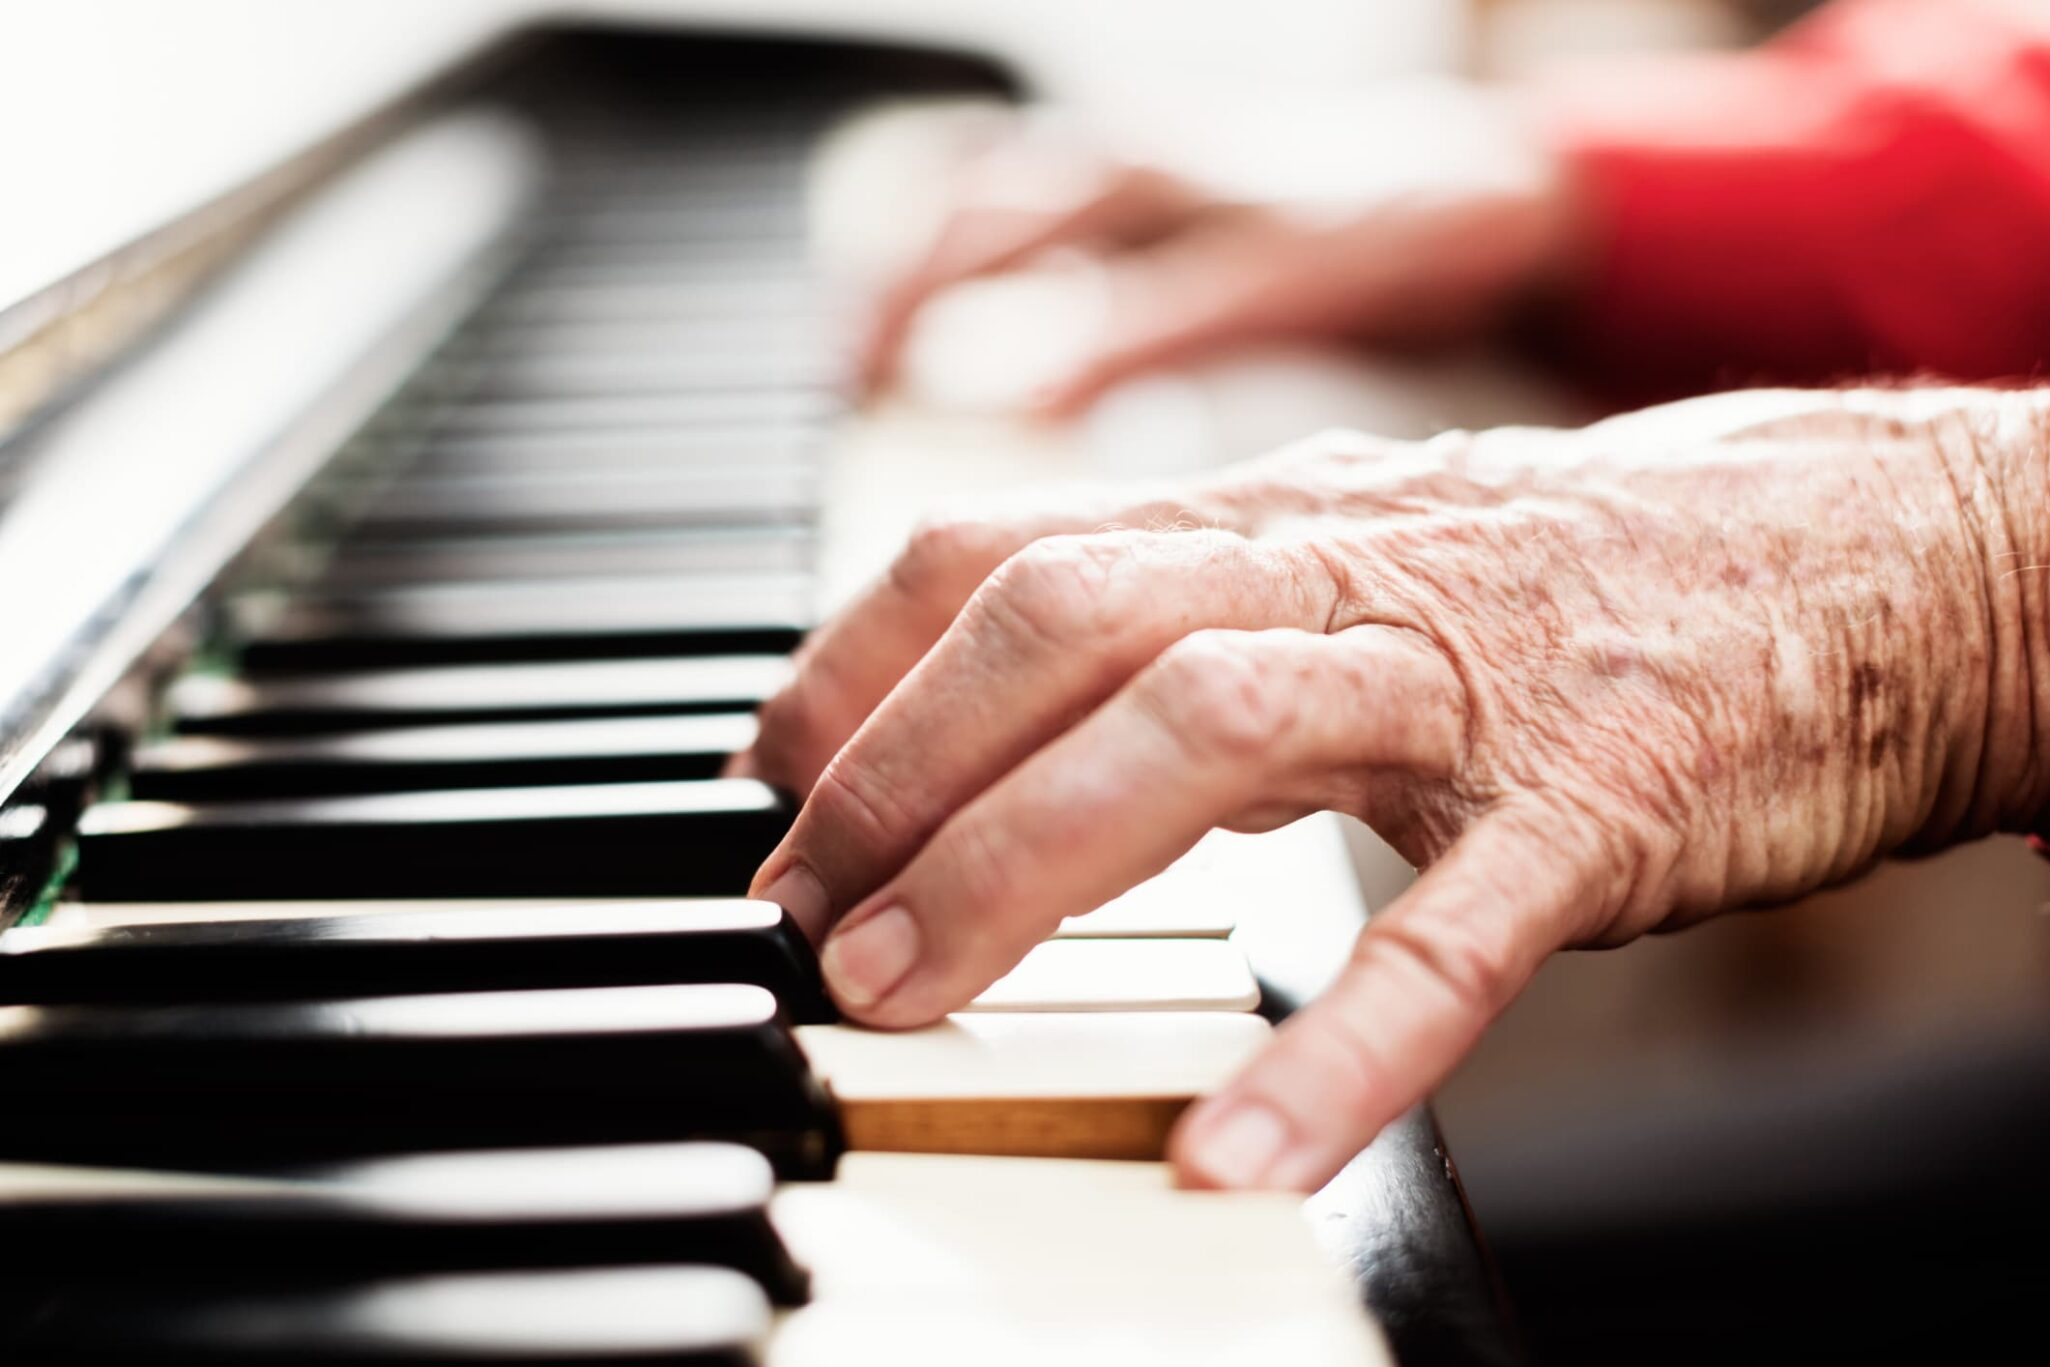 Elderly hands playing a piano pain-free.